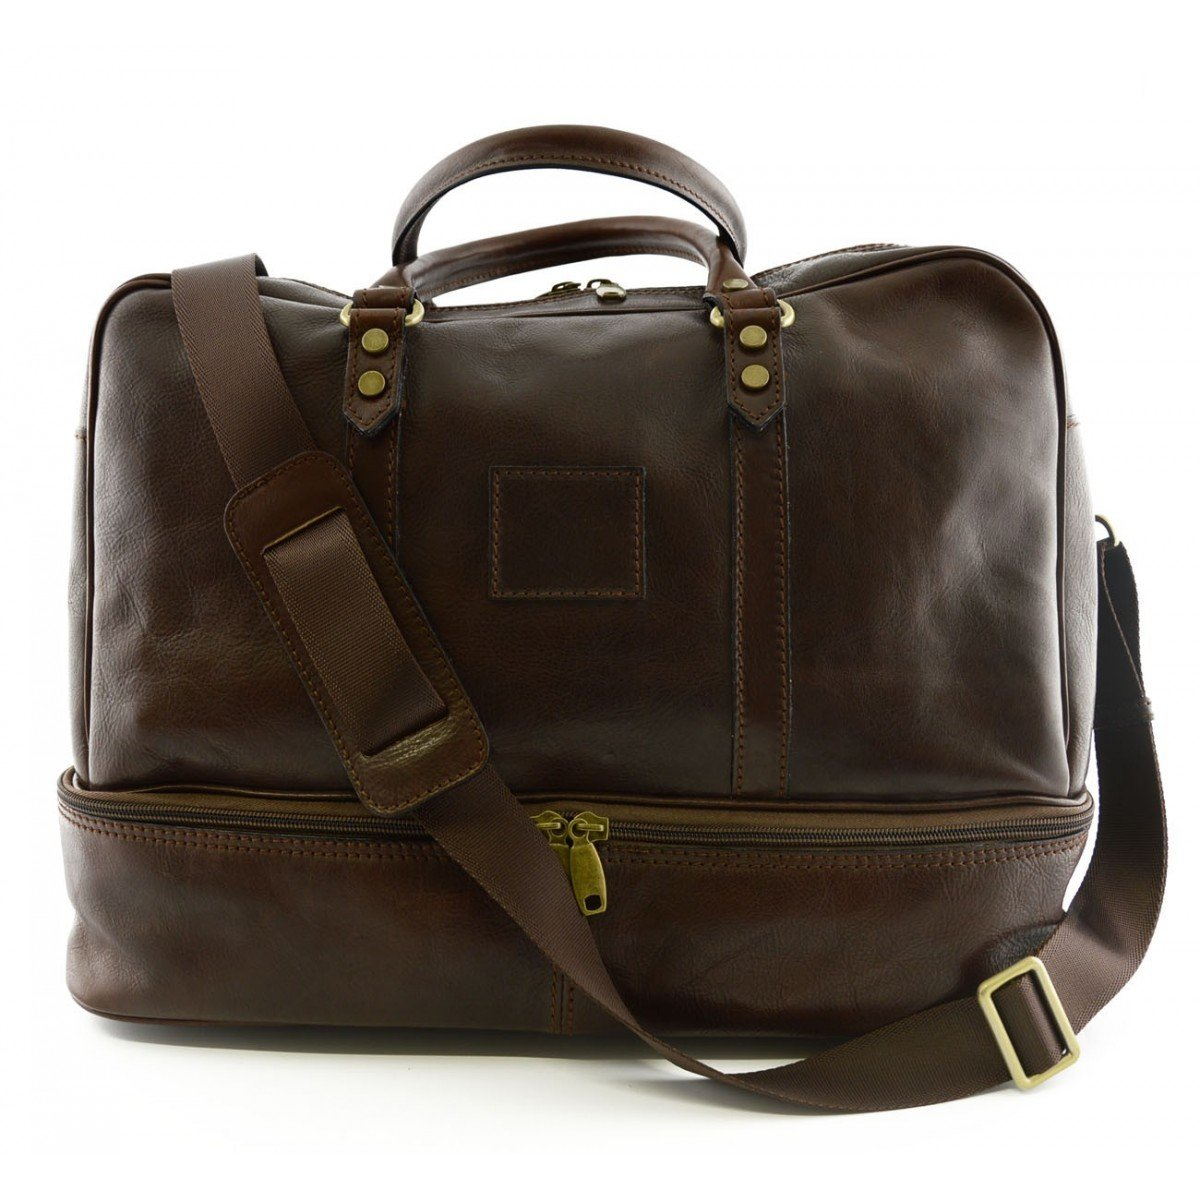 Made In Italy Leather Travel Bag Color Dark Brown - Travel Bag B014T6HU58